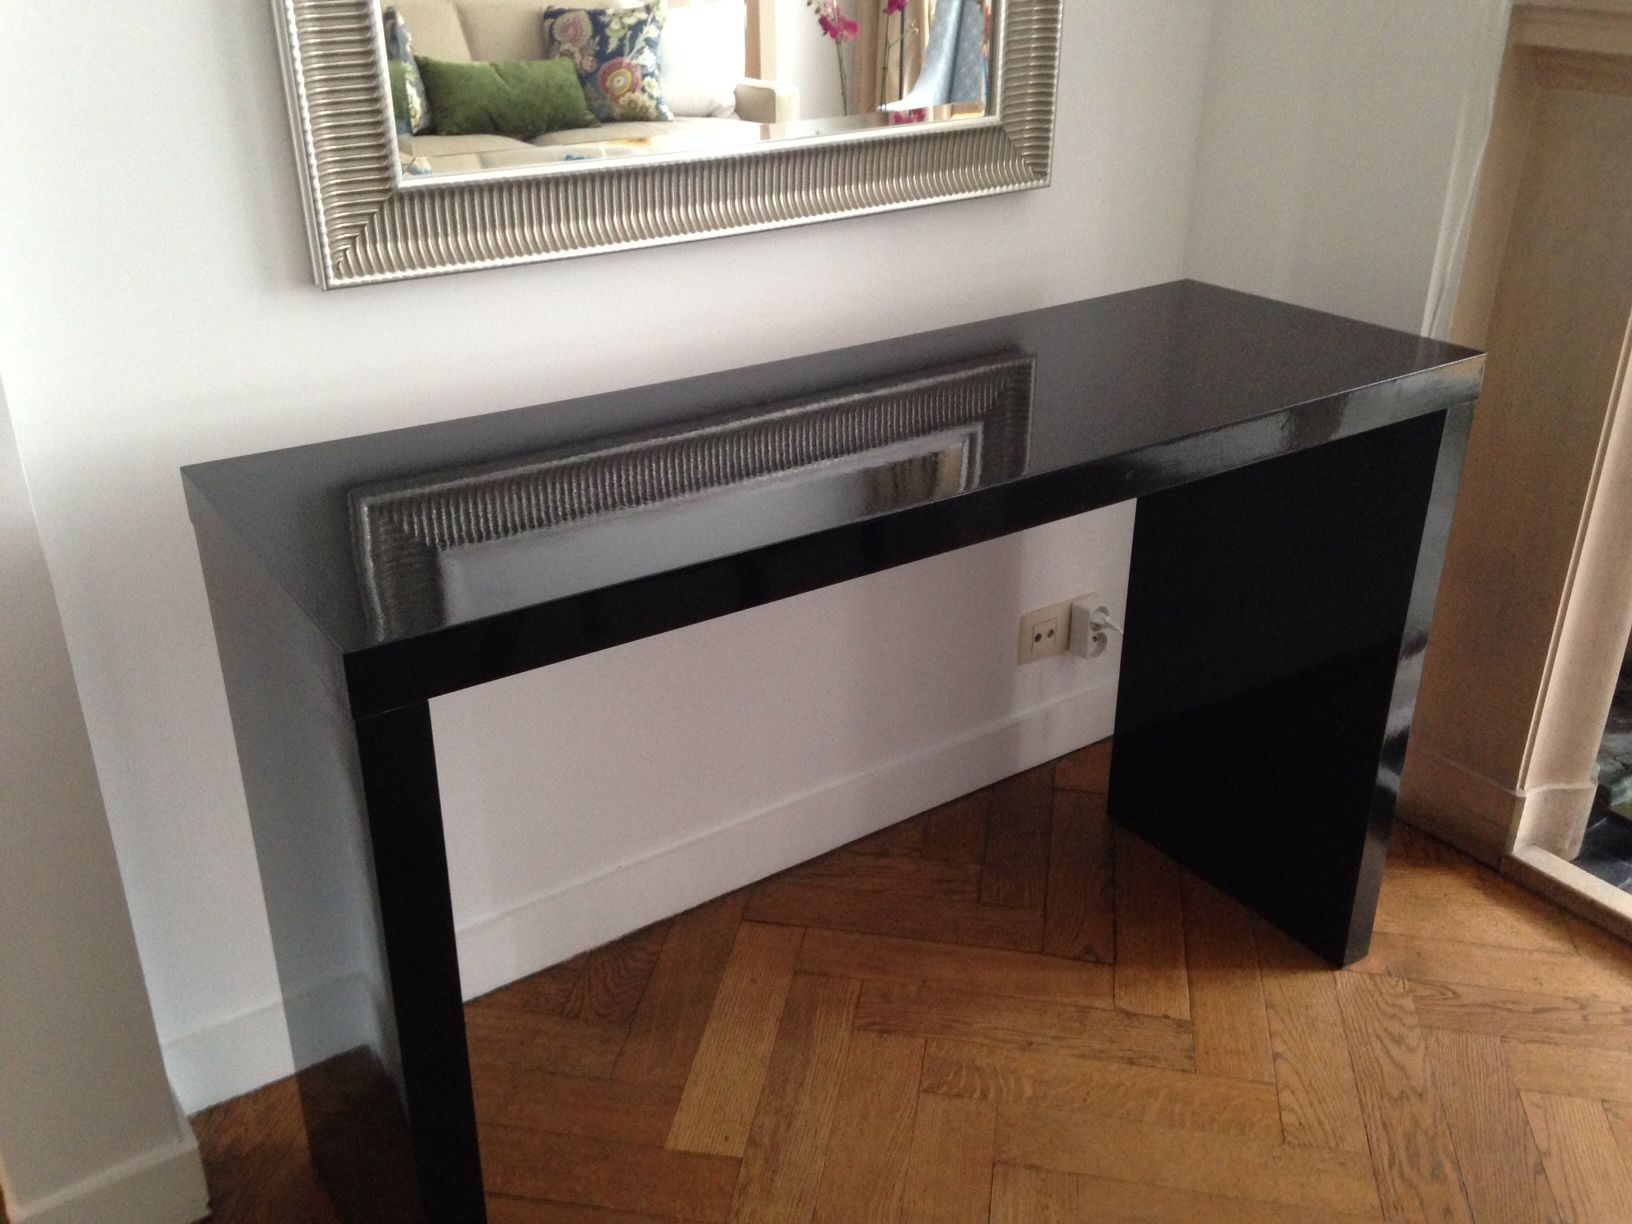 Print of The Console Tables IKEA for Stylish and Functional Storage